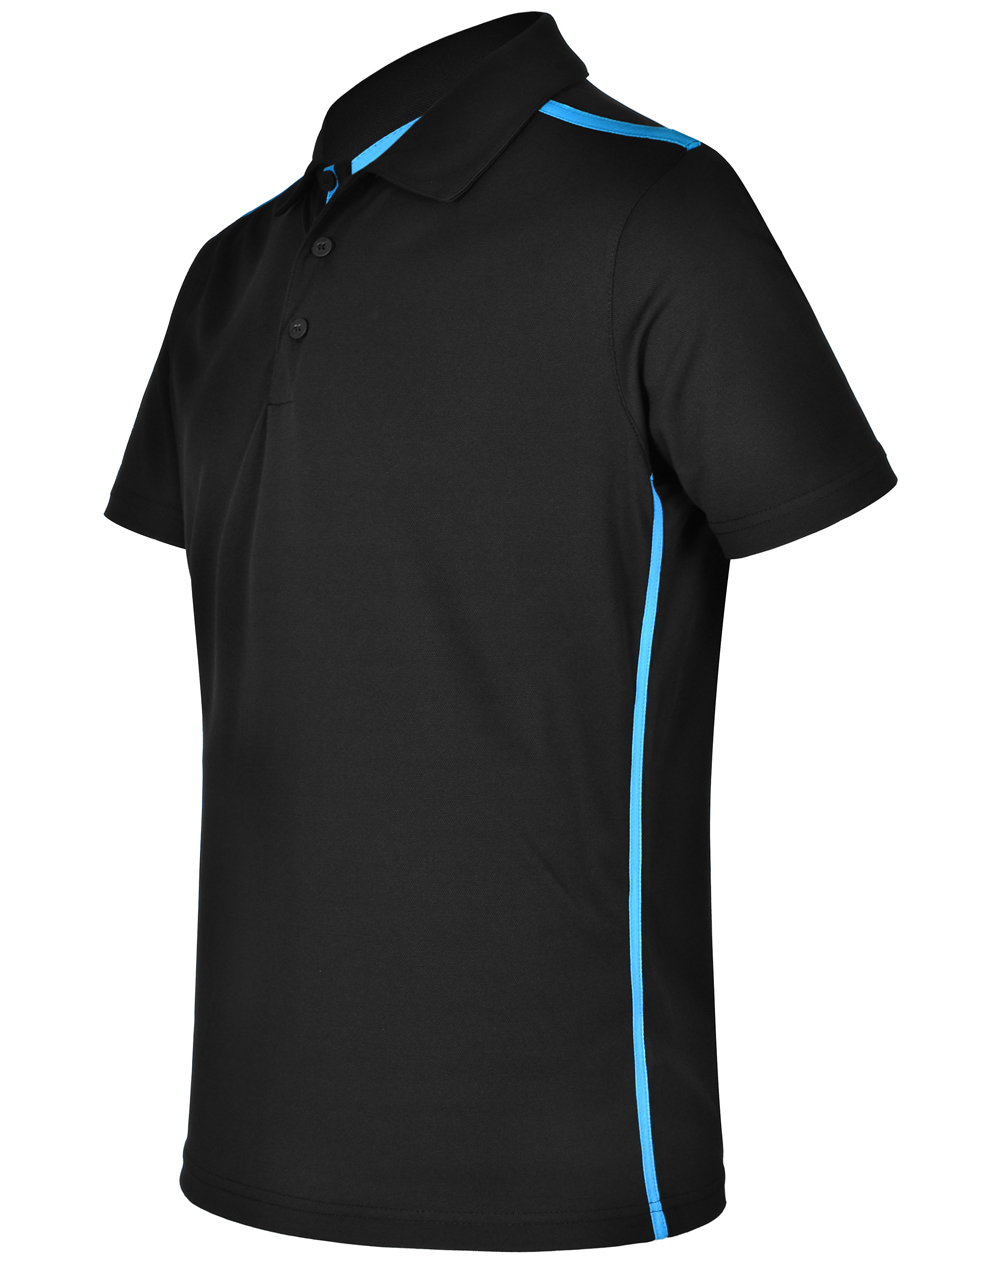 https://s3-ap-southeast-1.amazonaws.com/ws-imgs/POLOSHIRTS/PS83_BlackCyan_Side.jpg